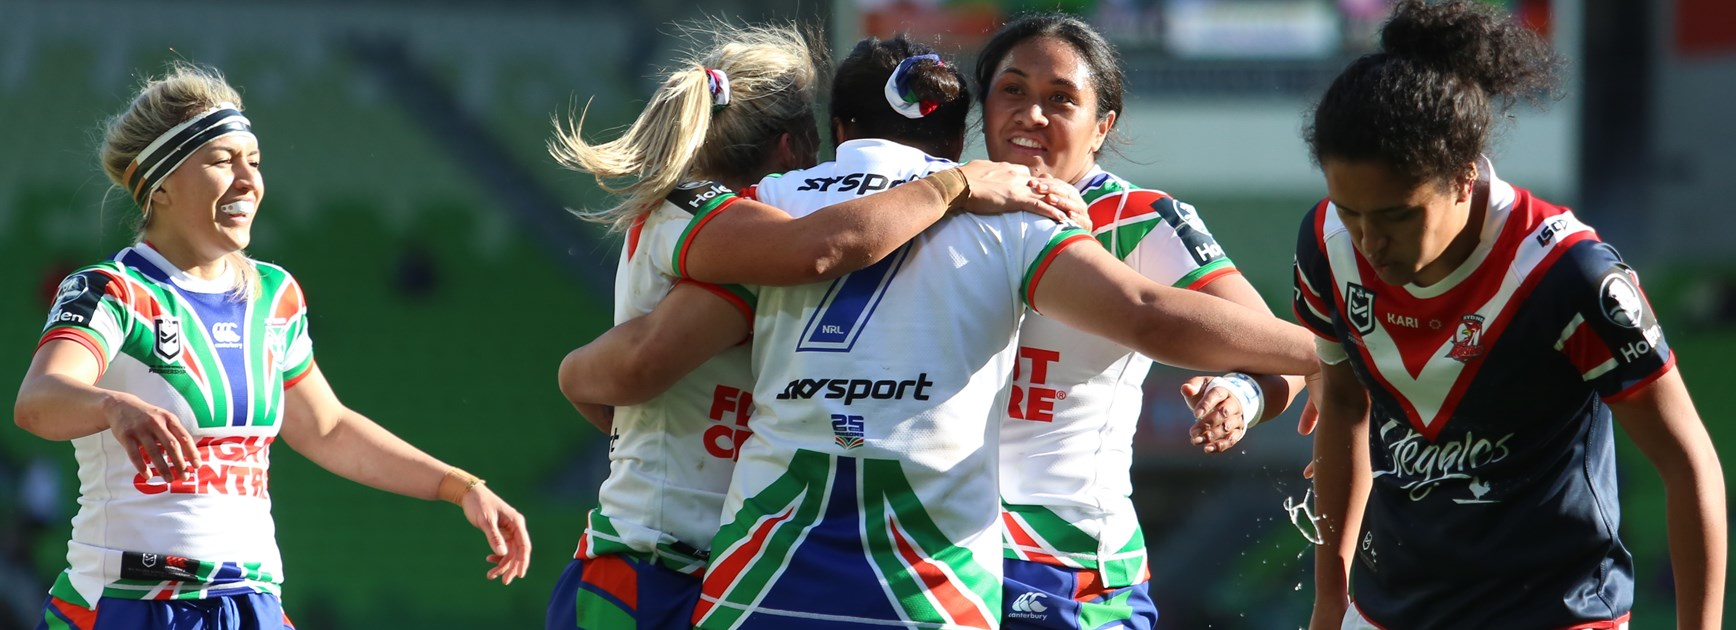 Warriors kick off NRLW season with solid win over Roosters